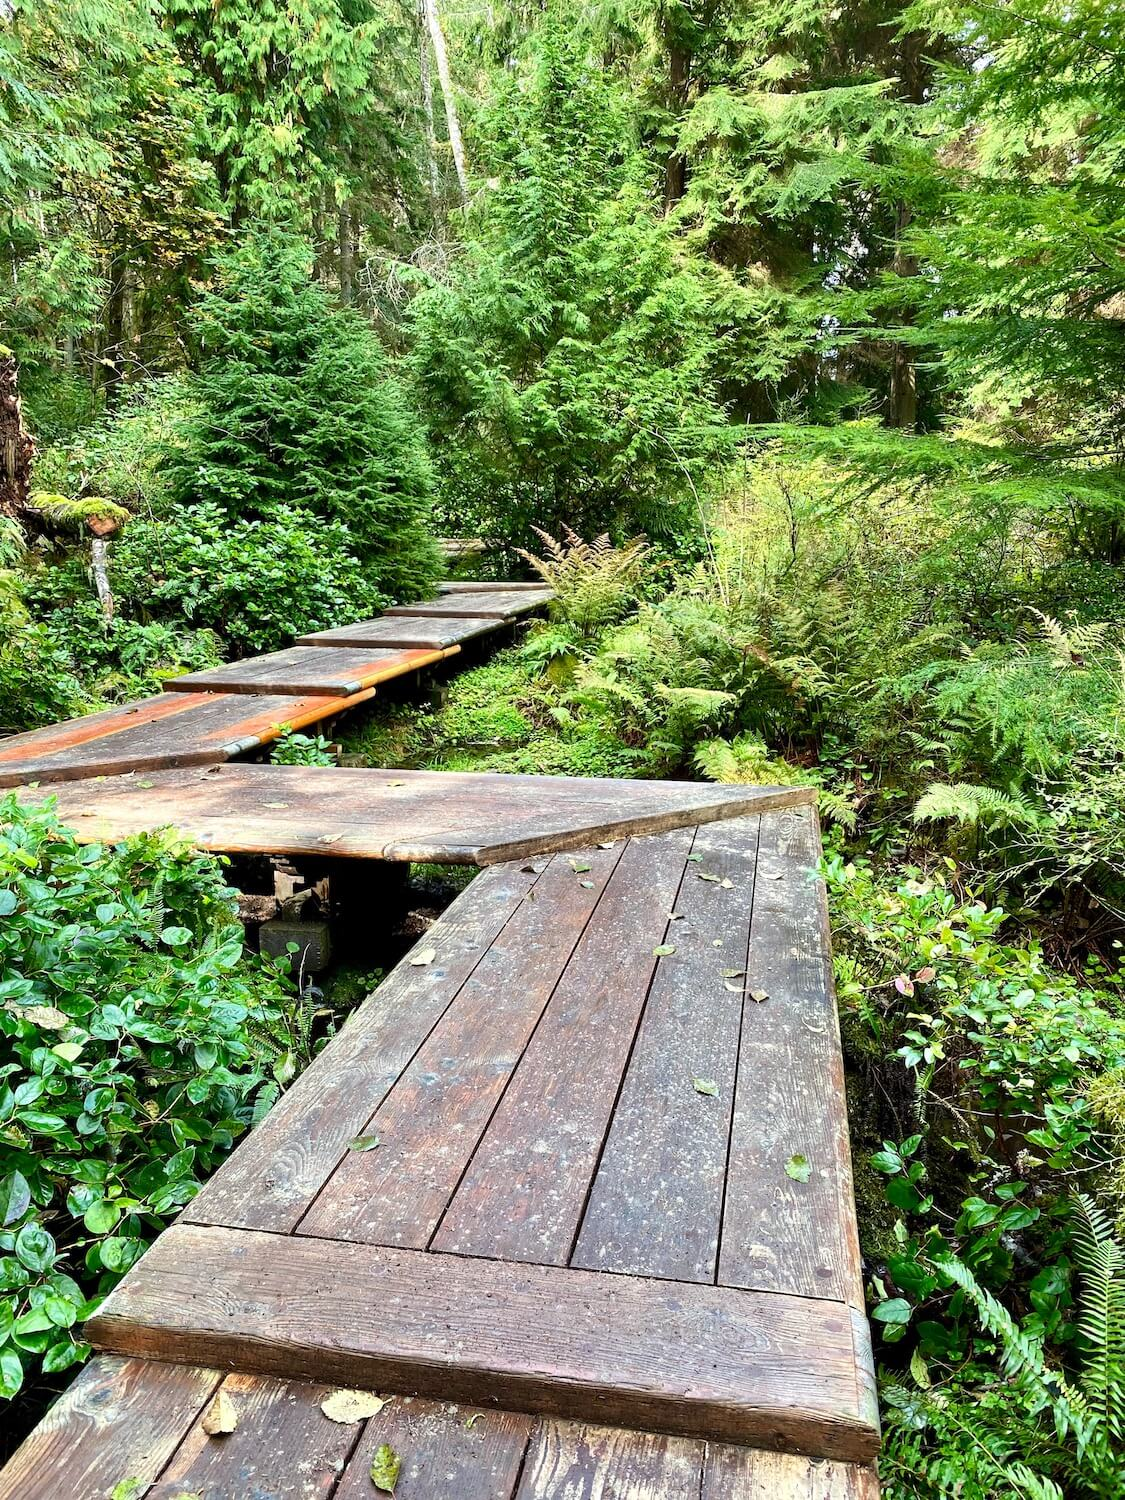 A zig zag patterned wooden boardwalk traverses through marshy green shrubs and taller evergreen trees.